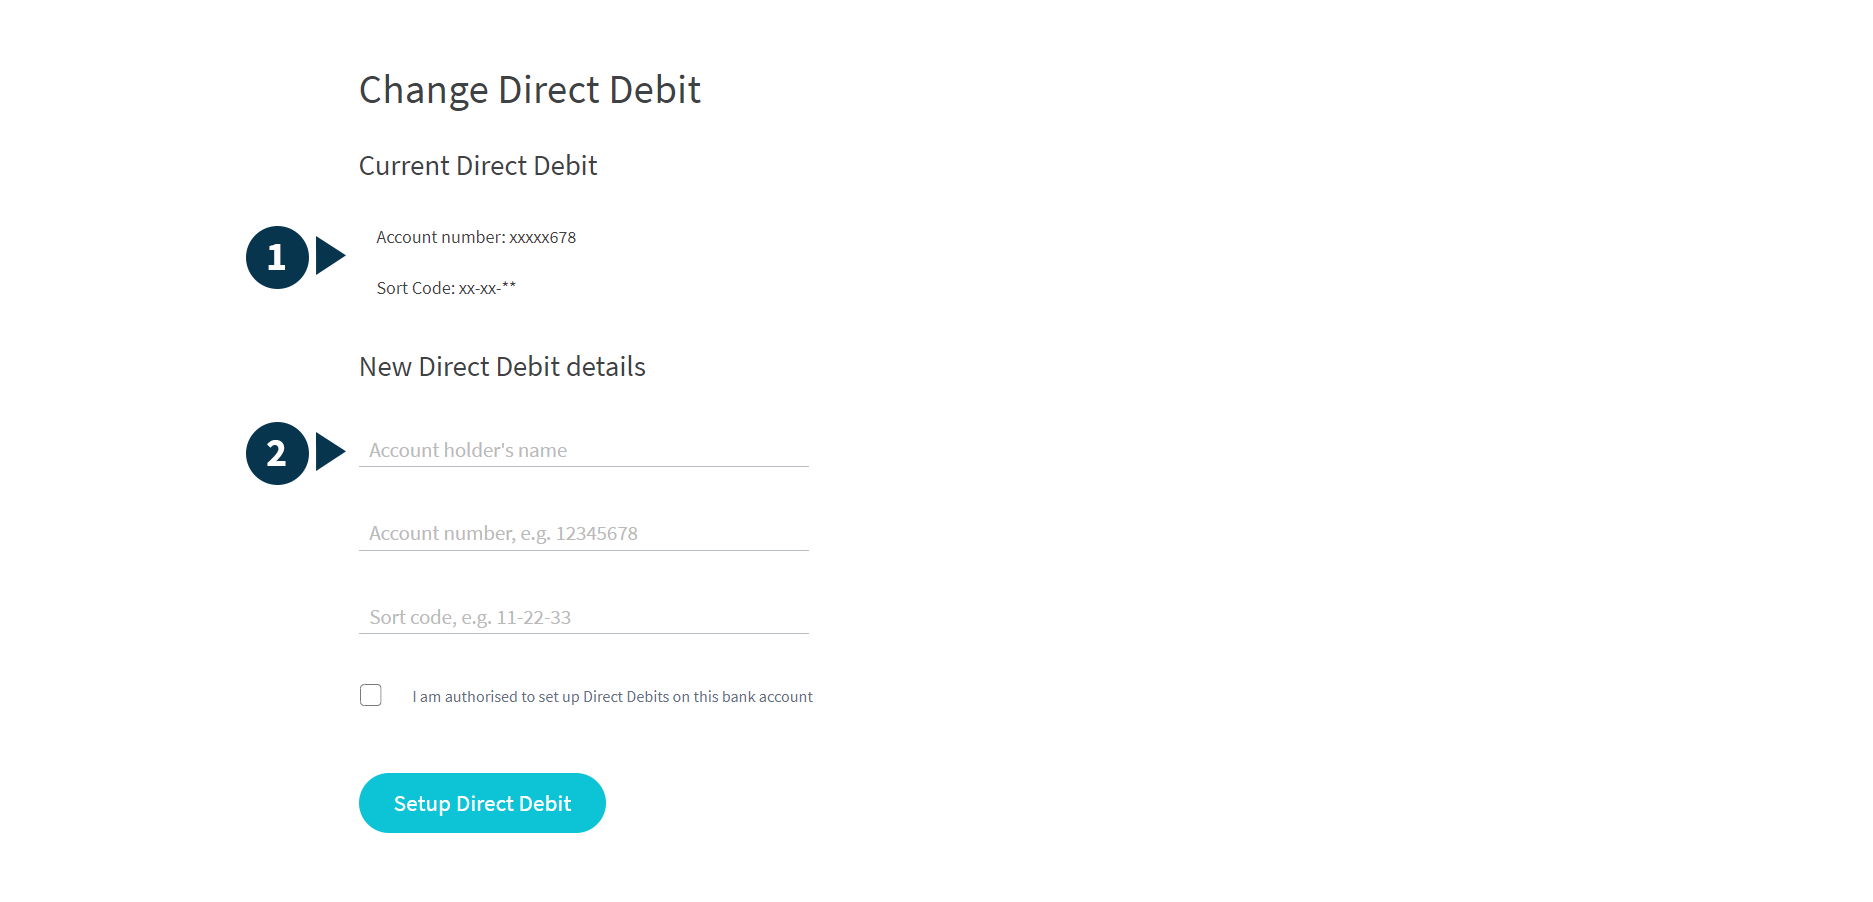 Screenshot of the change direct debit page, with parts numbered 1 and 2